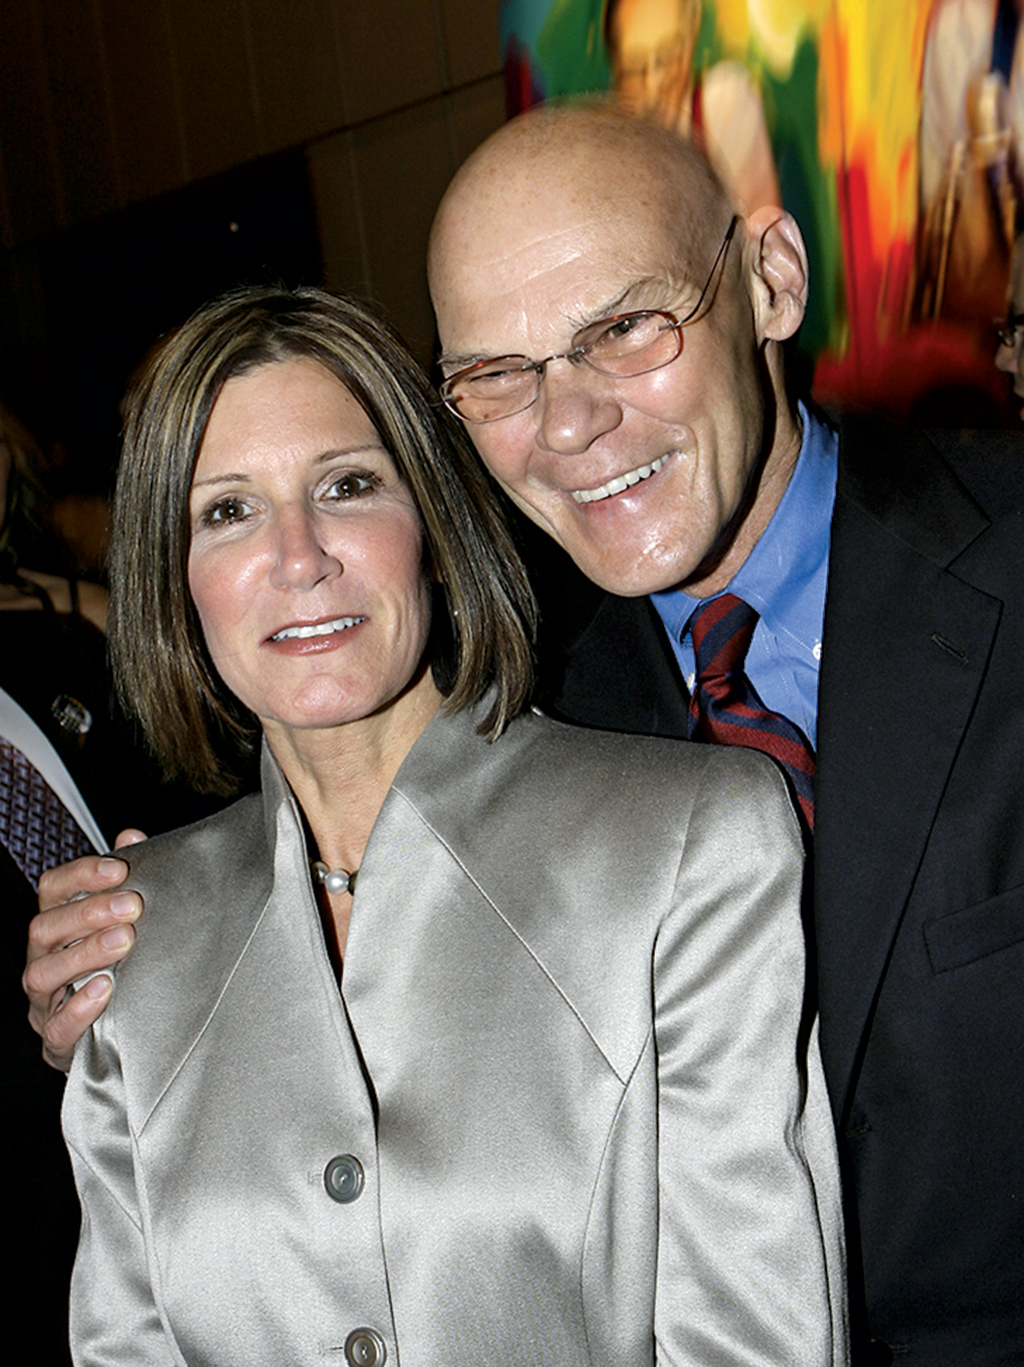 Photograph of Carville and Matalin by Stuart Ramson/AP Images